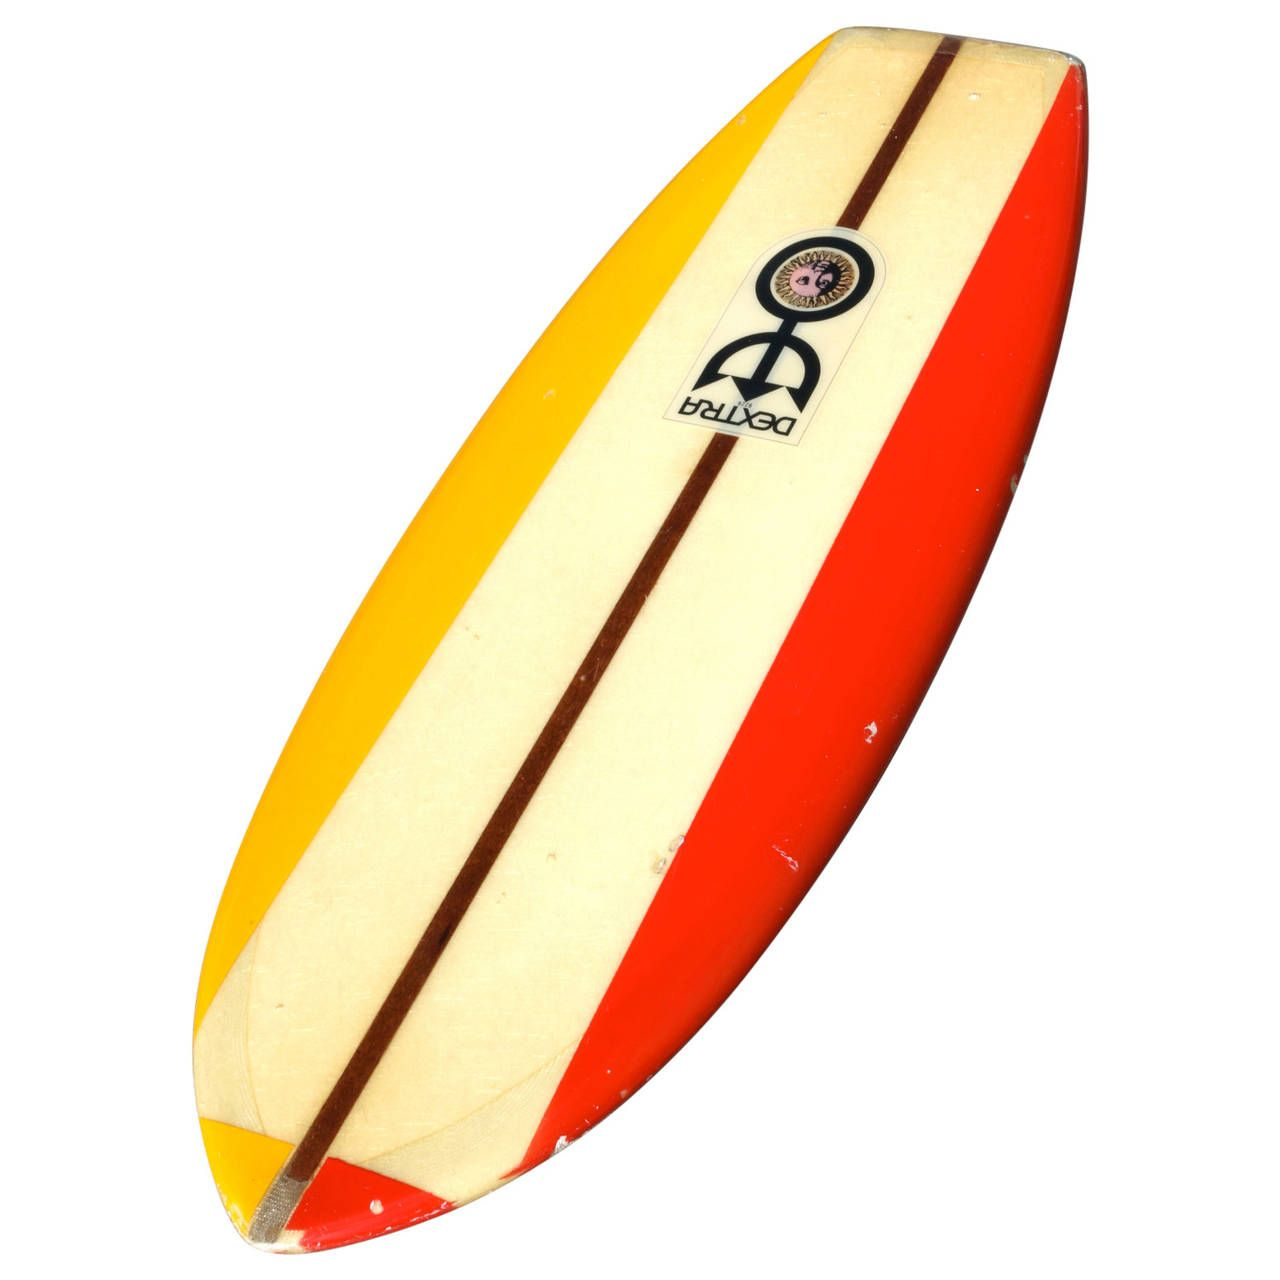 Clear Yellow Red Vintage Dextra Belly Board, California Surfboard ...